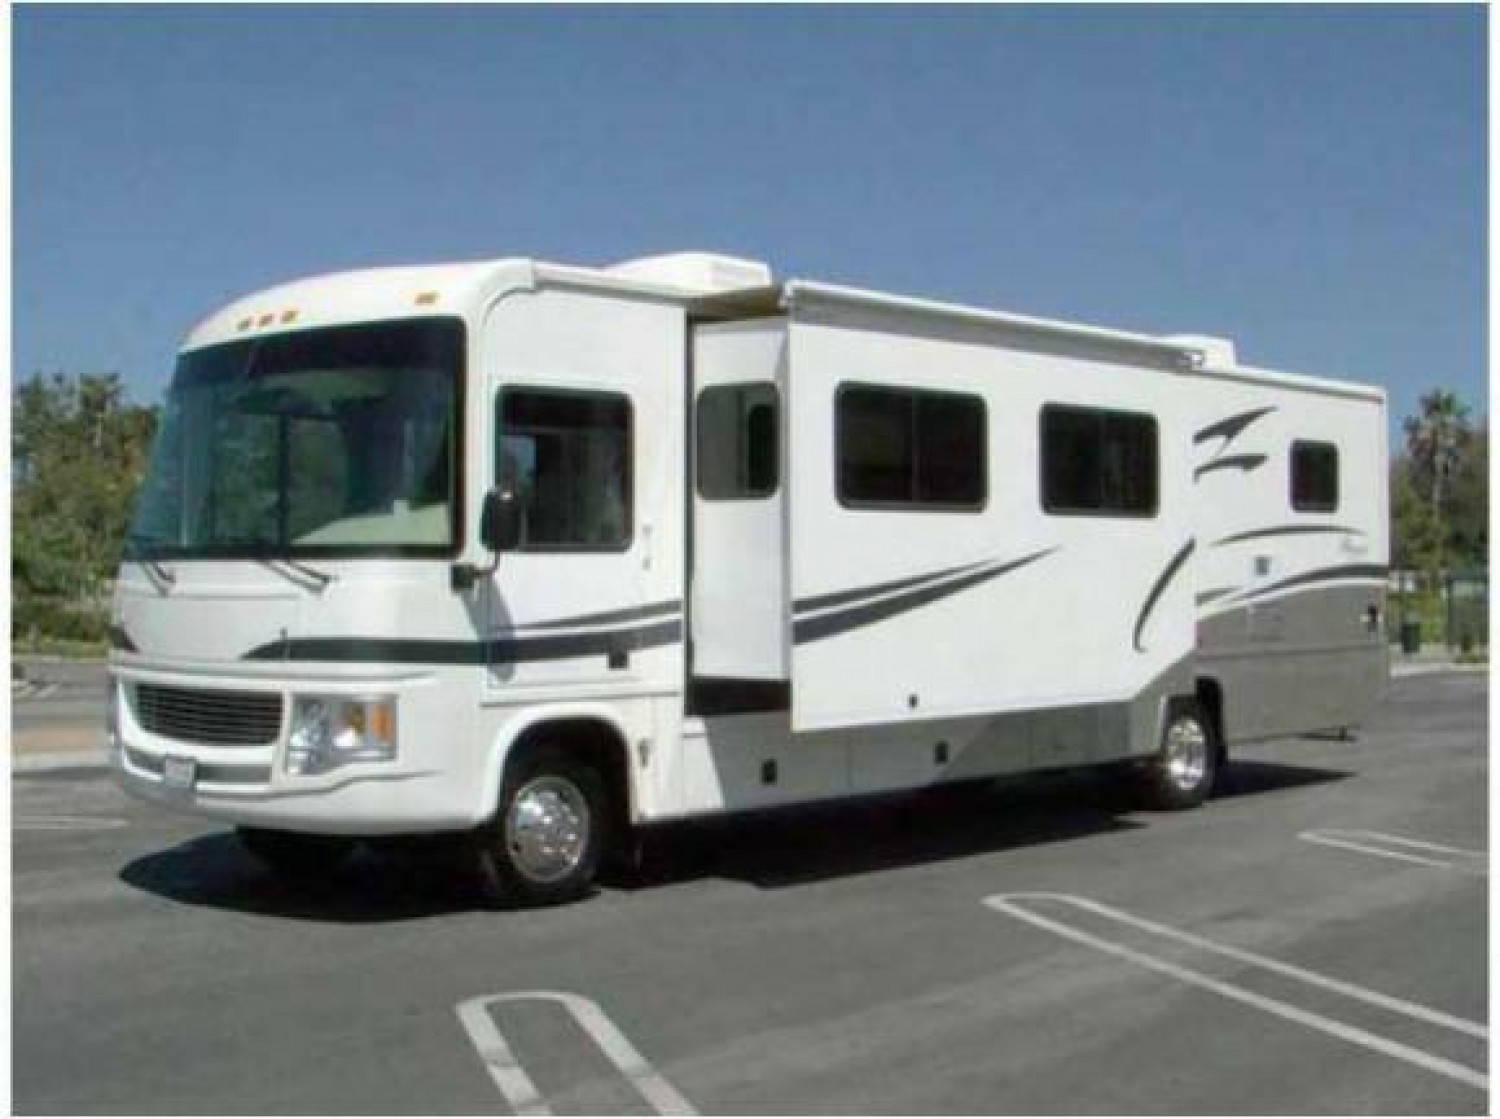 Motorhome 35' Georgie Boy 2 slides class A for rent - $200